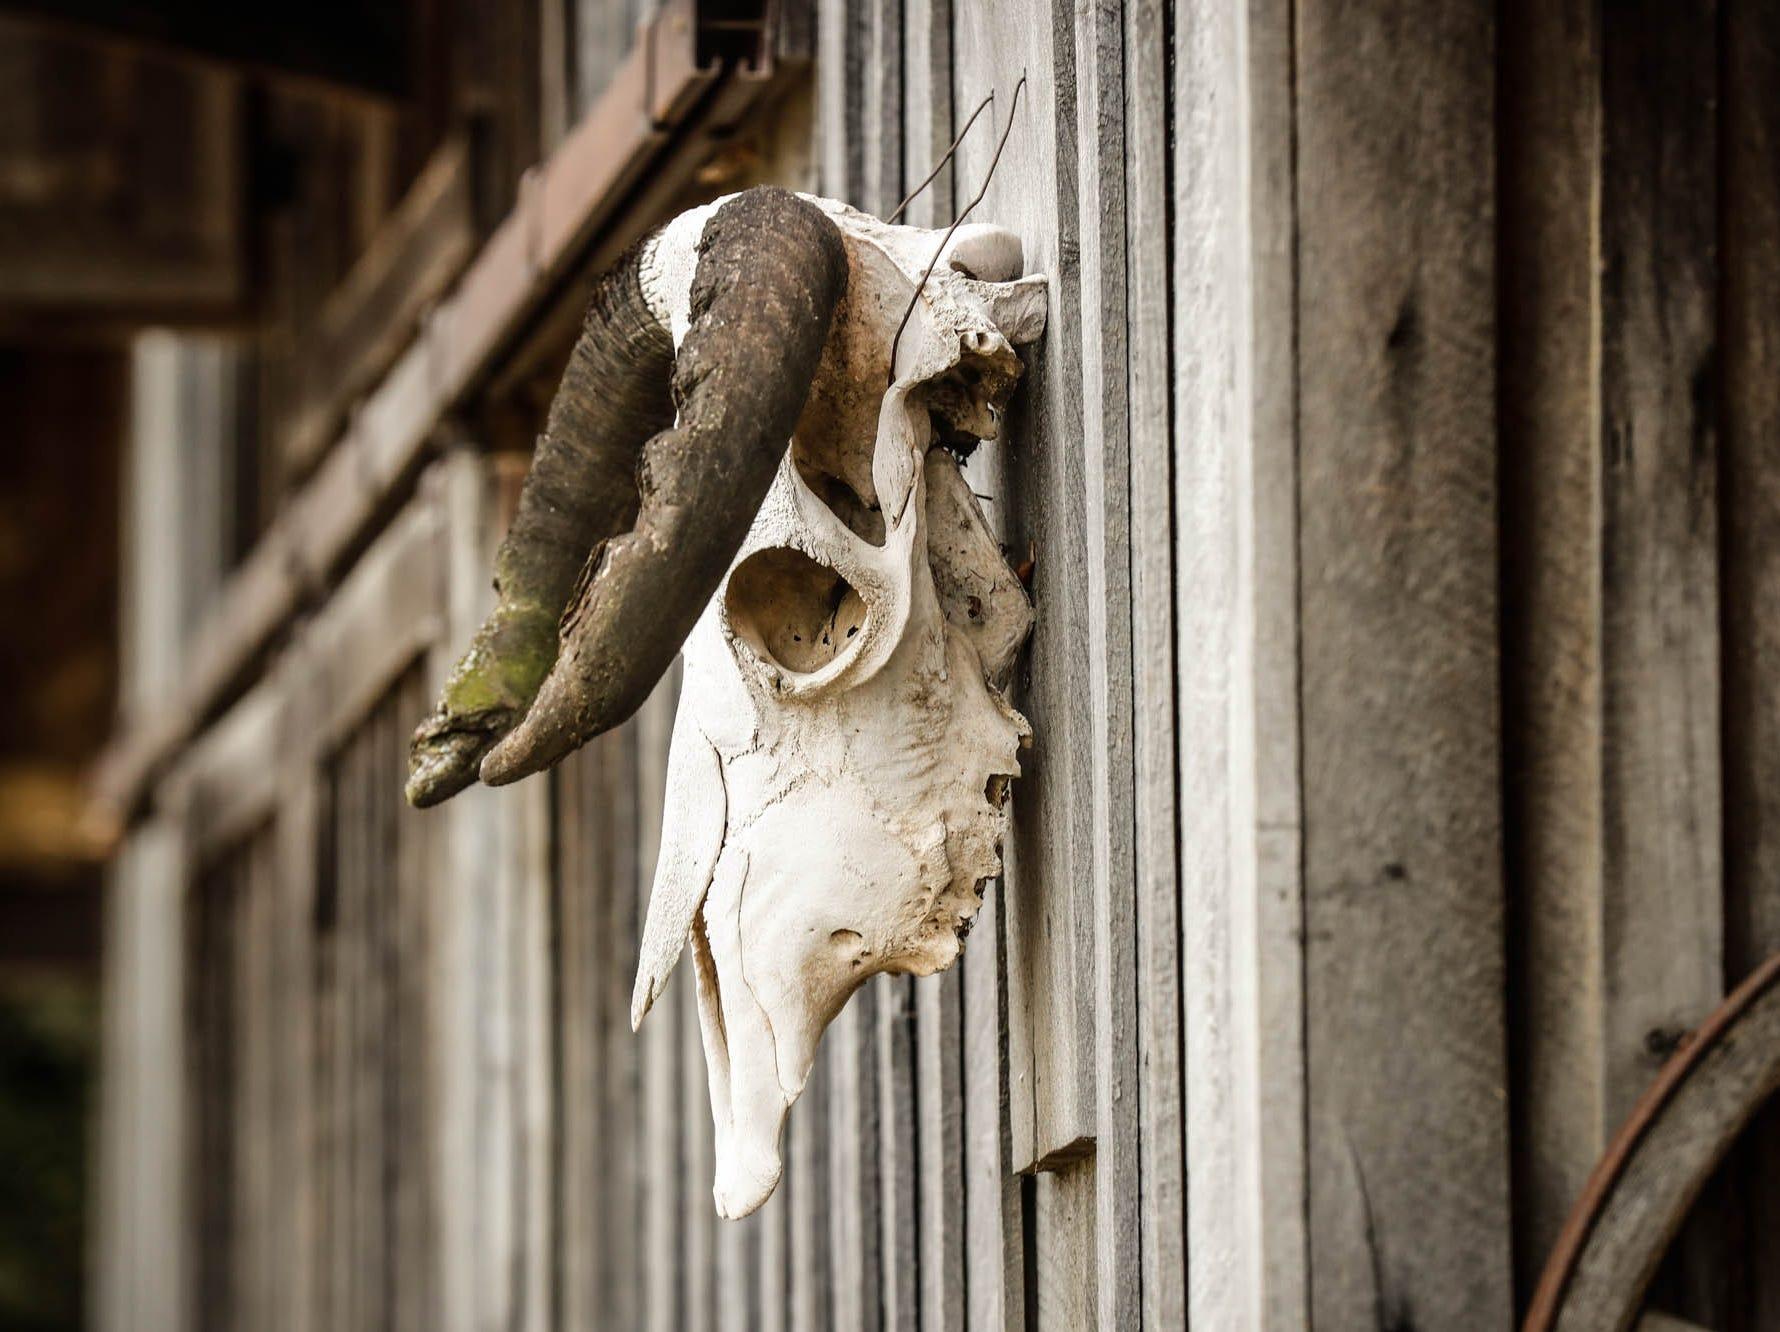 An animal skull hangs from a one-hundred-year-old barn moved from northern Indiana which sits behind a traditional style $2m home up for sale in Bargersville Ind. on Wednesday, Jan. 9, 2019. The house and barn sit on 8.1 acres and features two horse stalls and a man cave with a vintage stove.